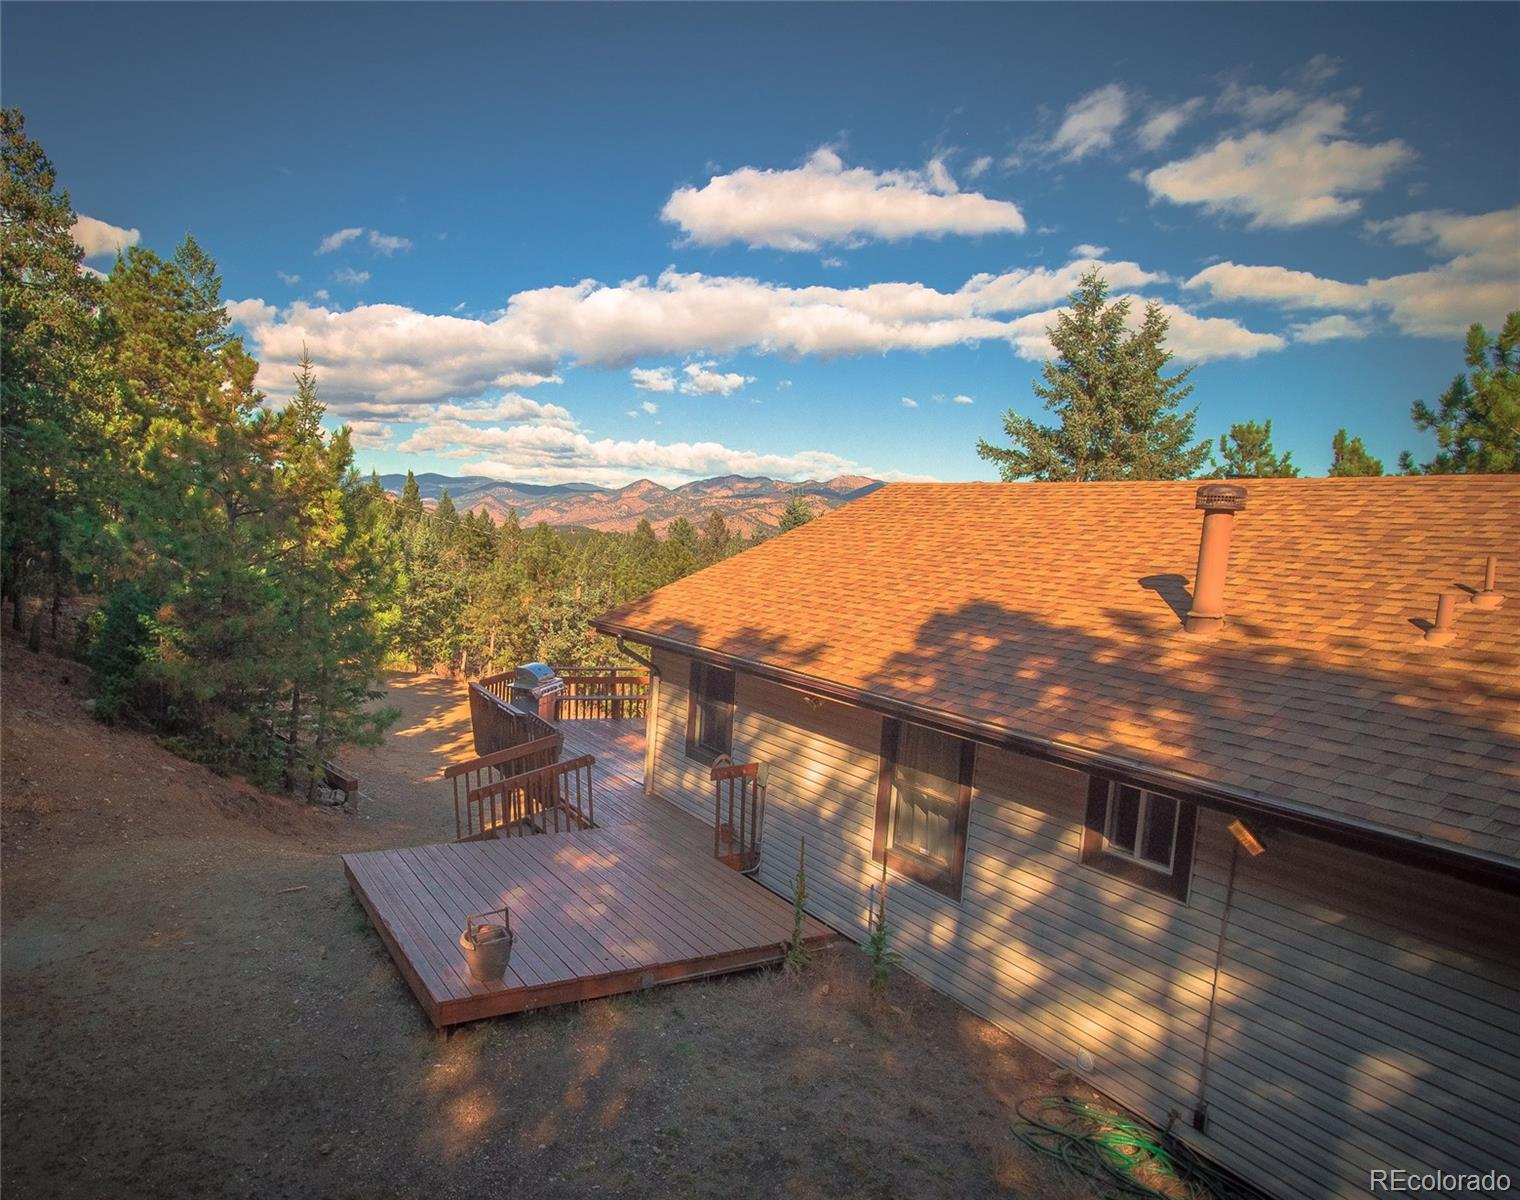 30392 Pine crest Drive, Evergreen, CO 80439 - Evergreen, CO real estate listing